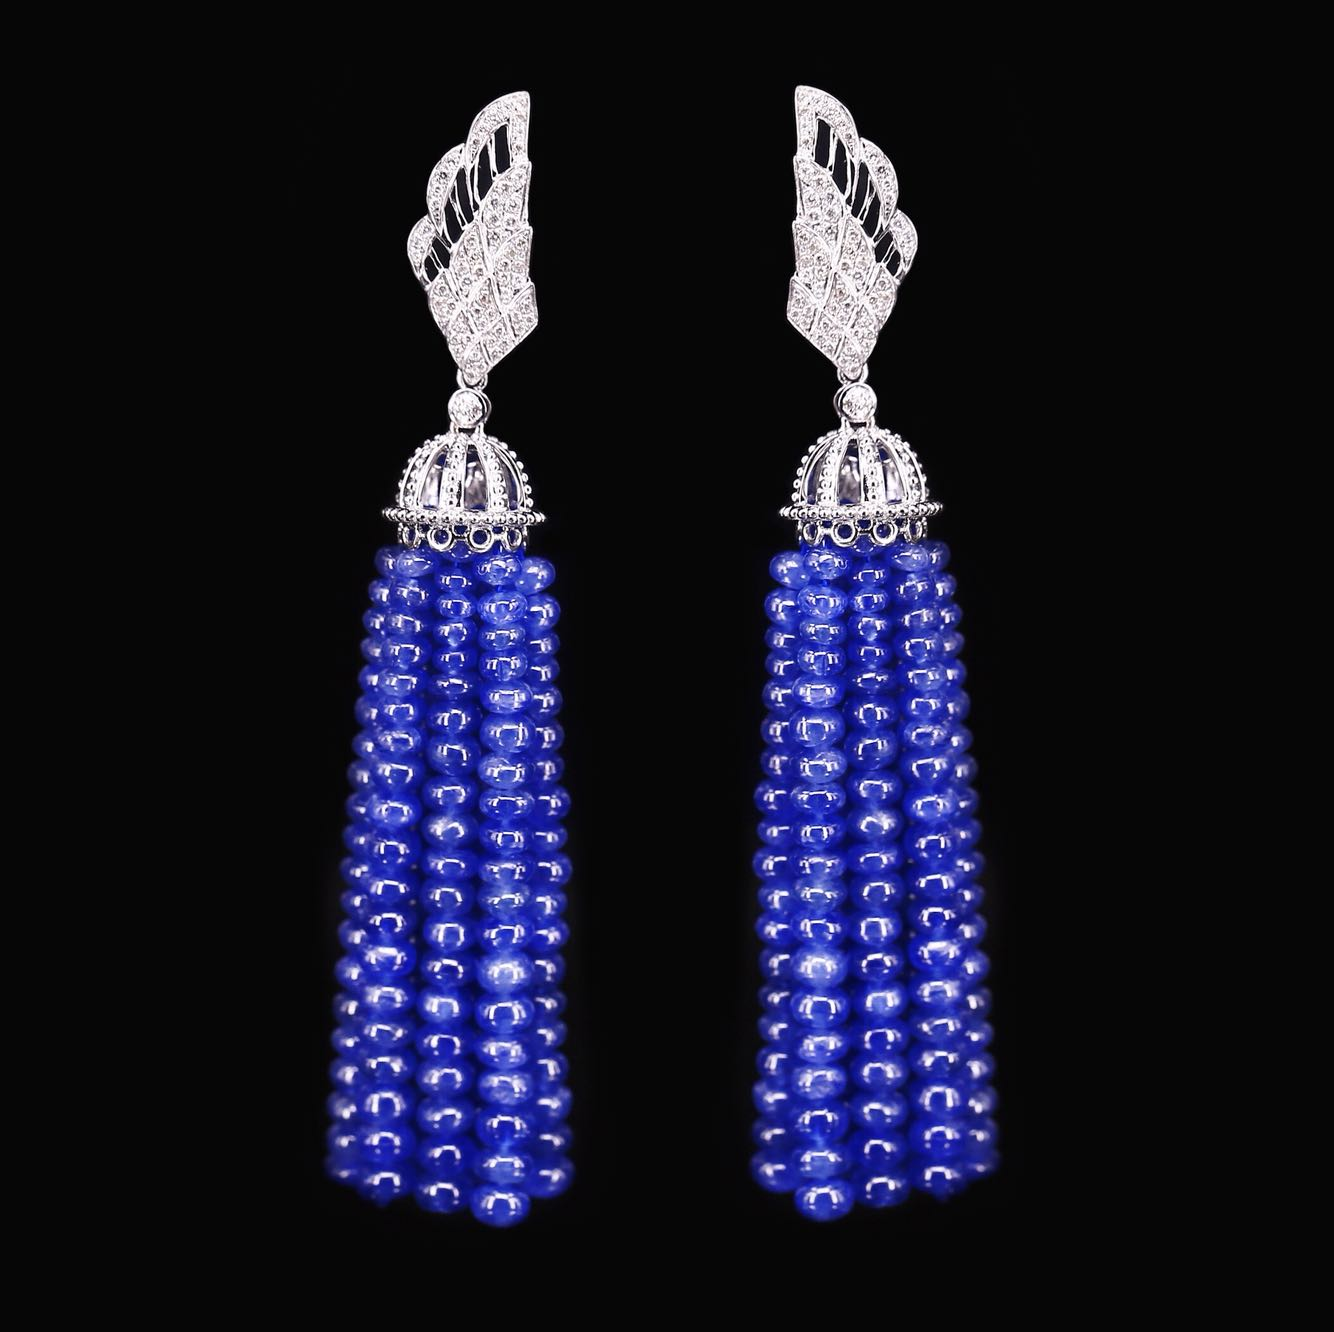 Designer Sapphire Diamond Tassel Earrings ~ the upper part of the earrings is shaped by platinum and diamond wings